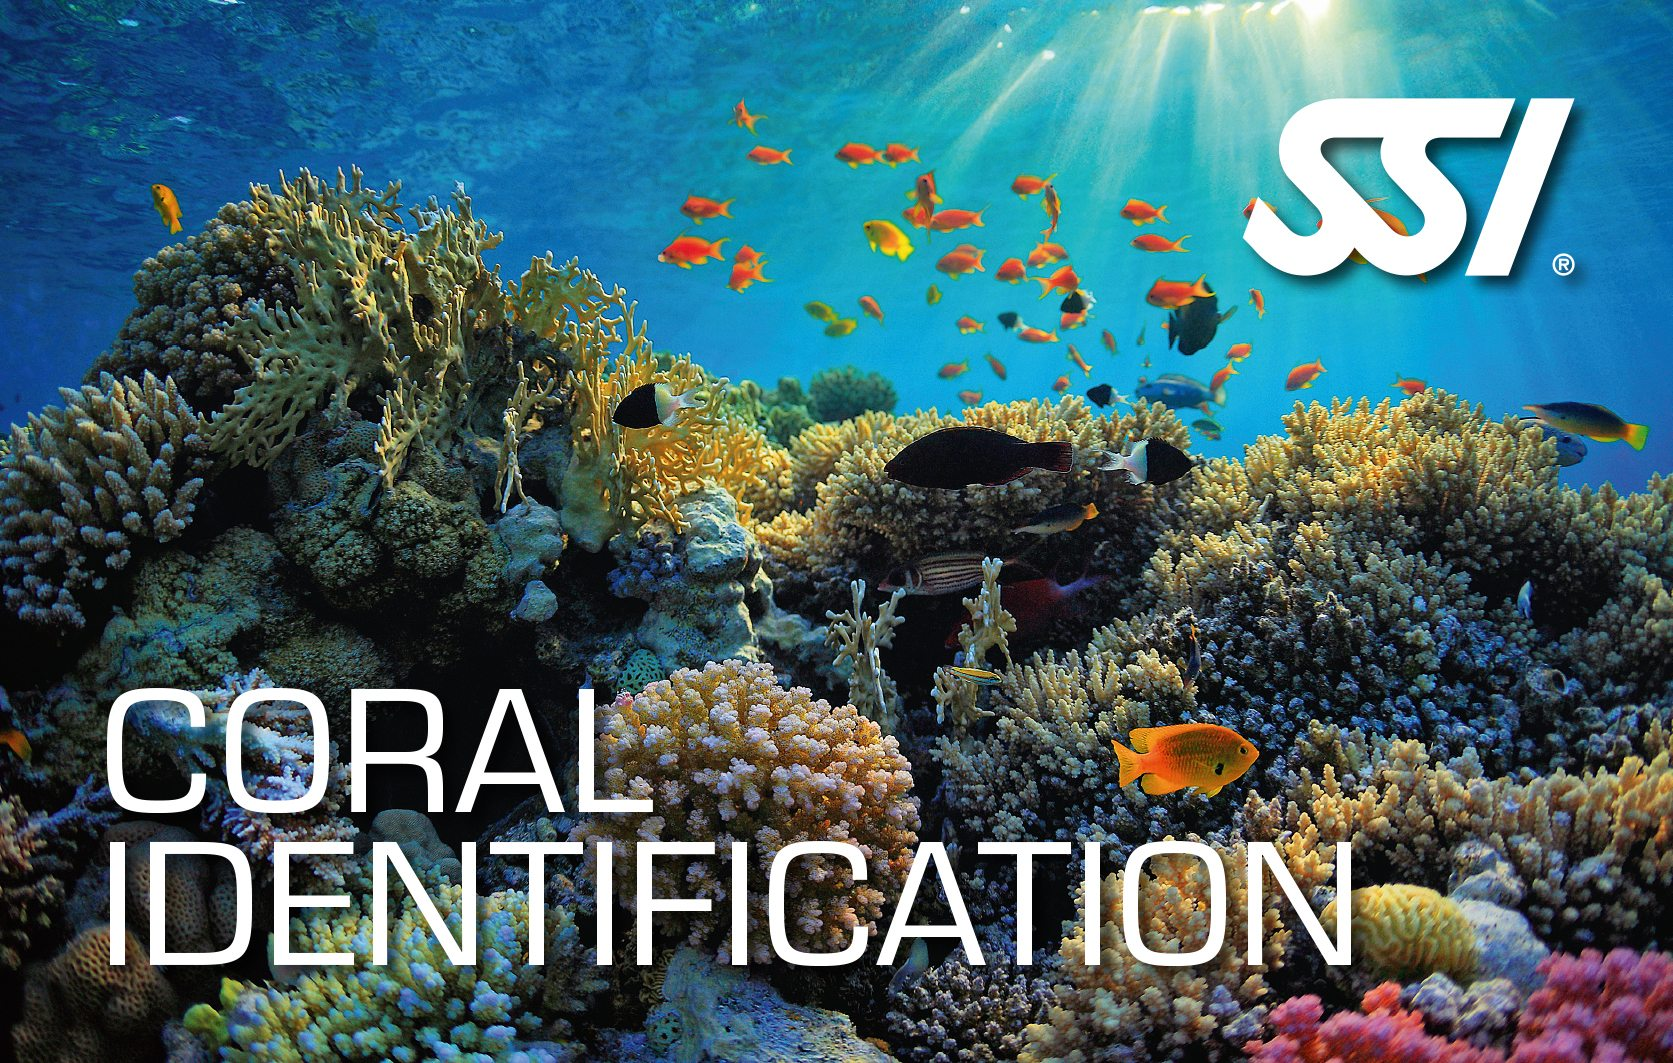 SSI Coral Identification | SSI Coral Identification Course | Coral Identification | Specialty Course | Diving Course | Eko Divers